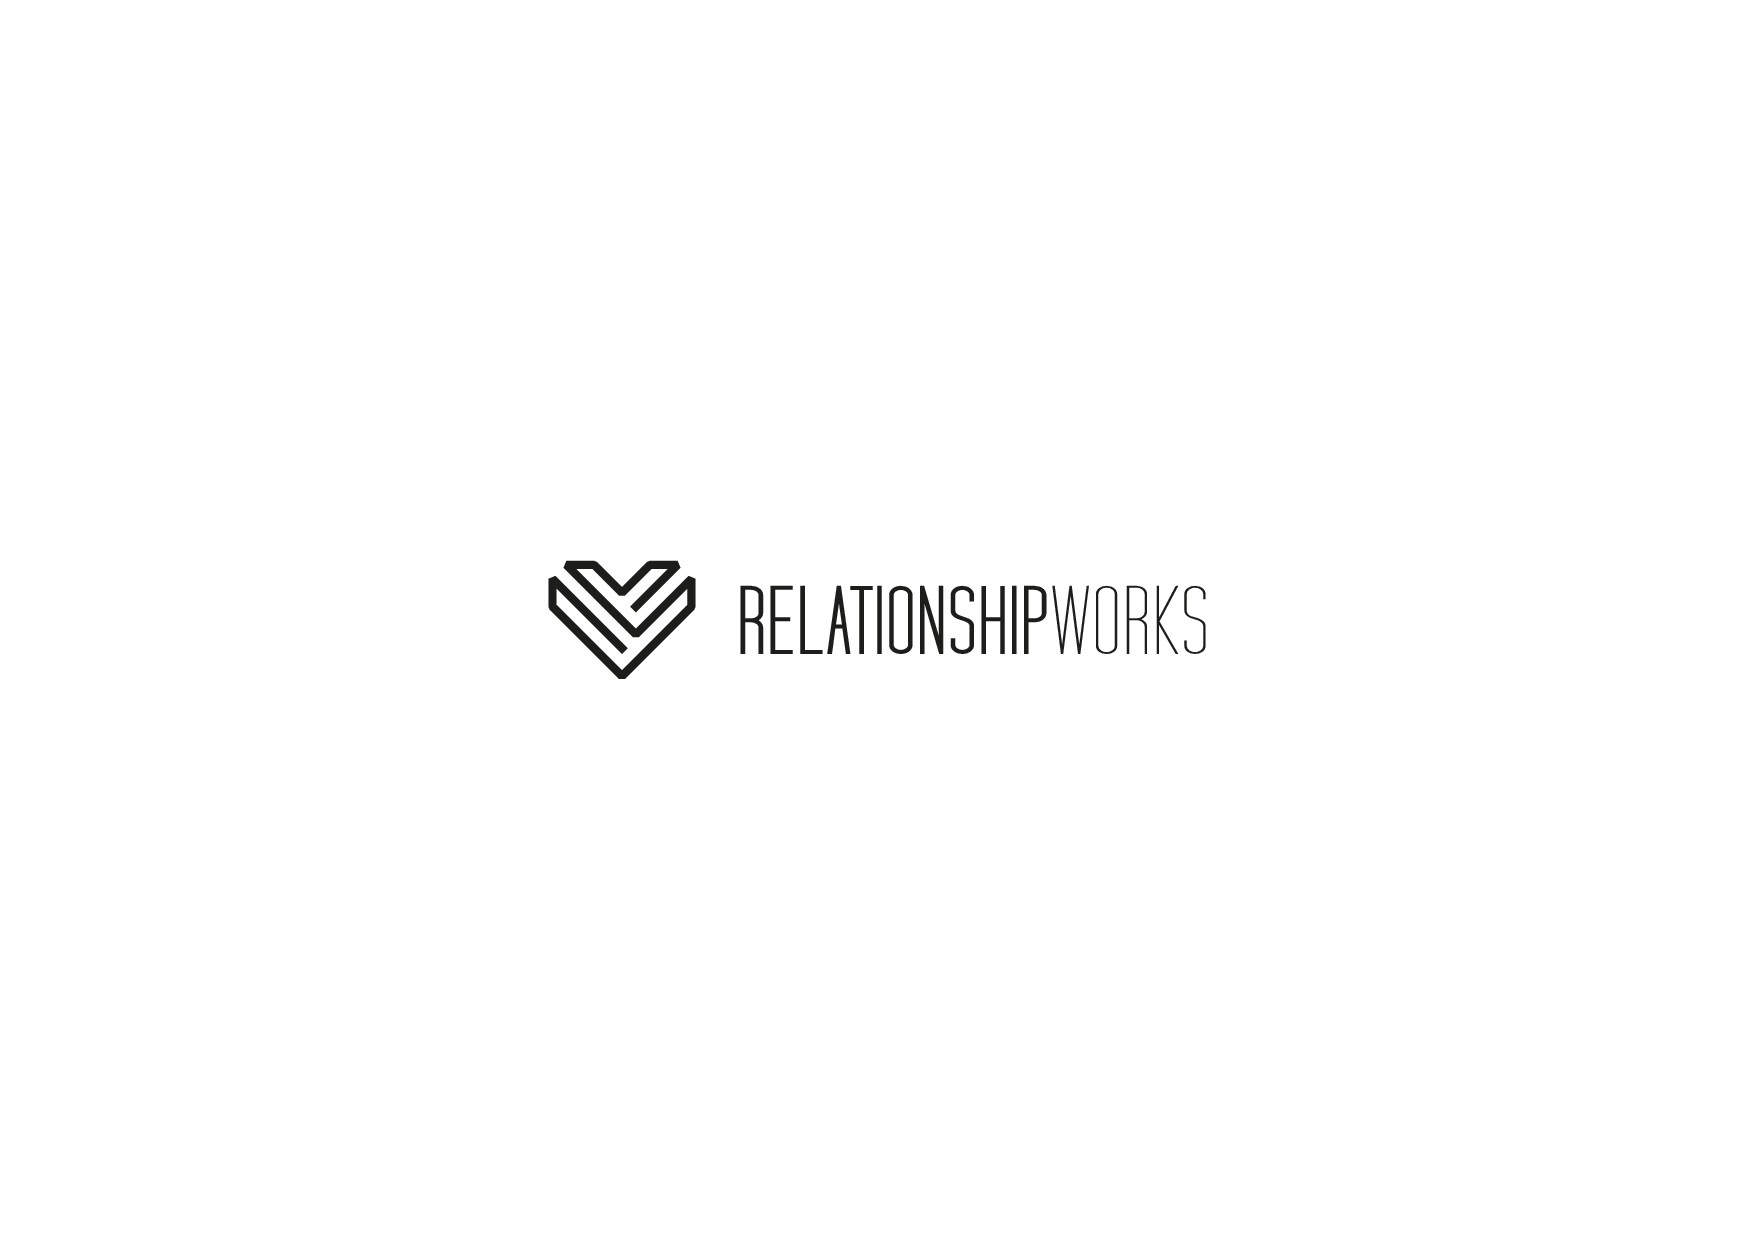 Design a modern logo for Relationship Works!